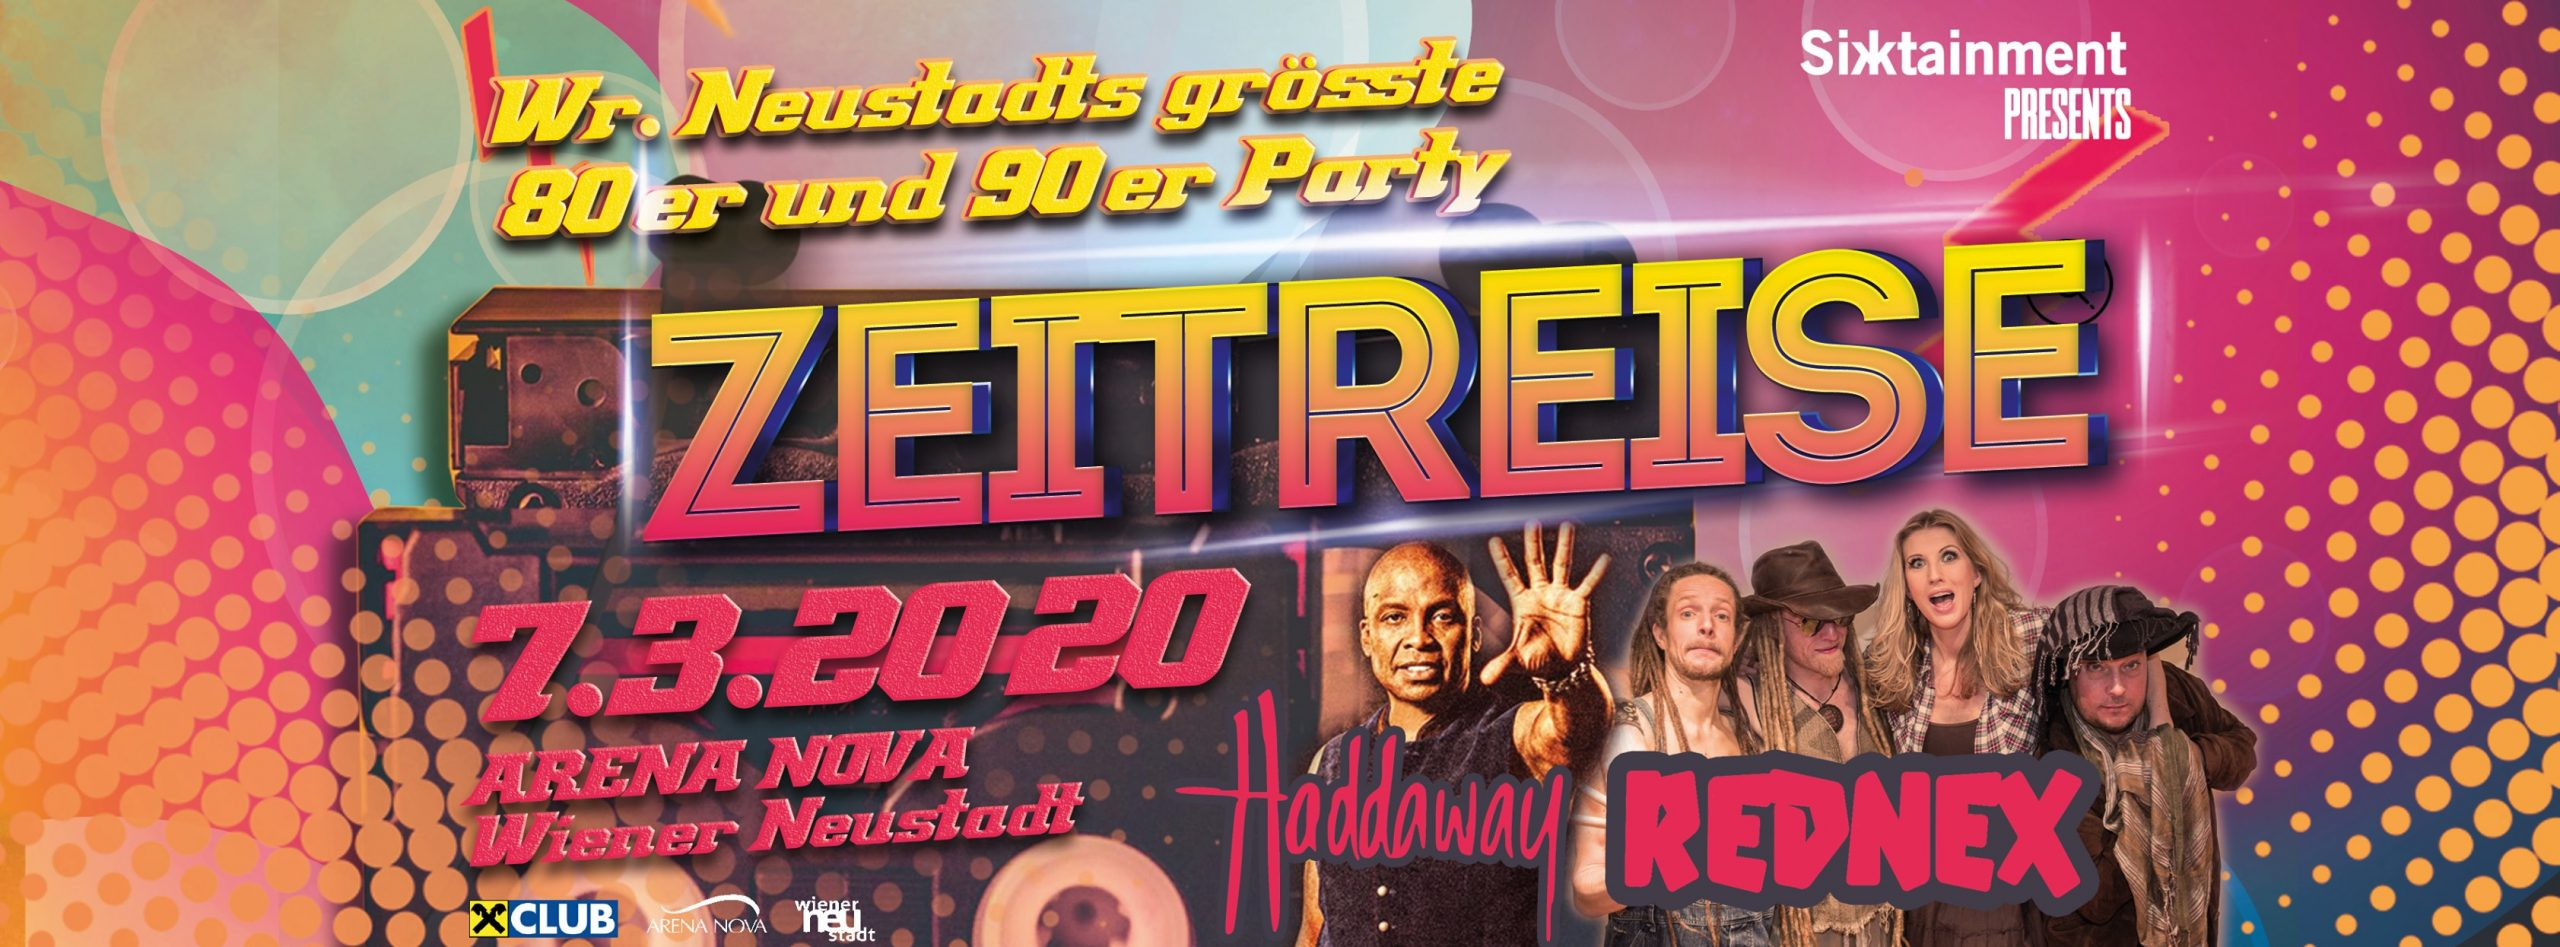 Zeitreise - We Love The 80's and 90's am 7. March 2020 @ Arena Nova Playgrounds.